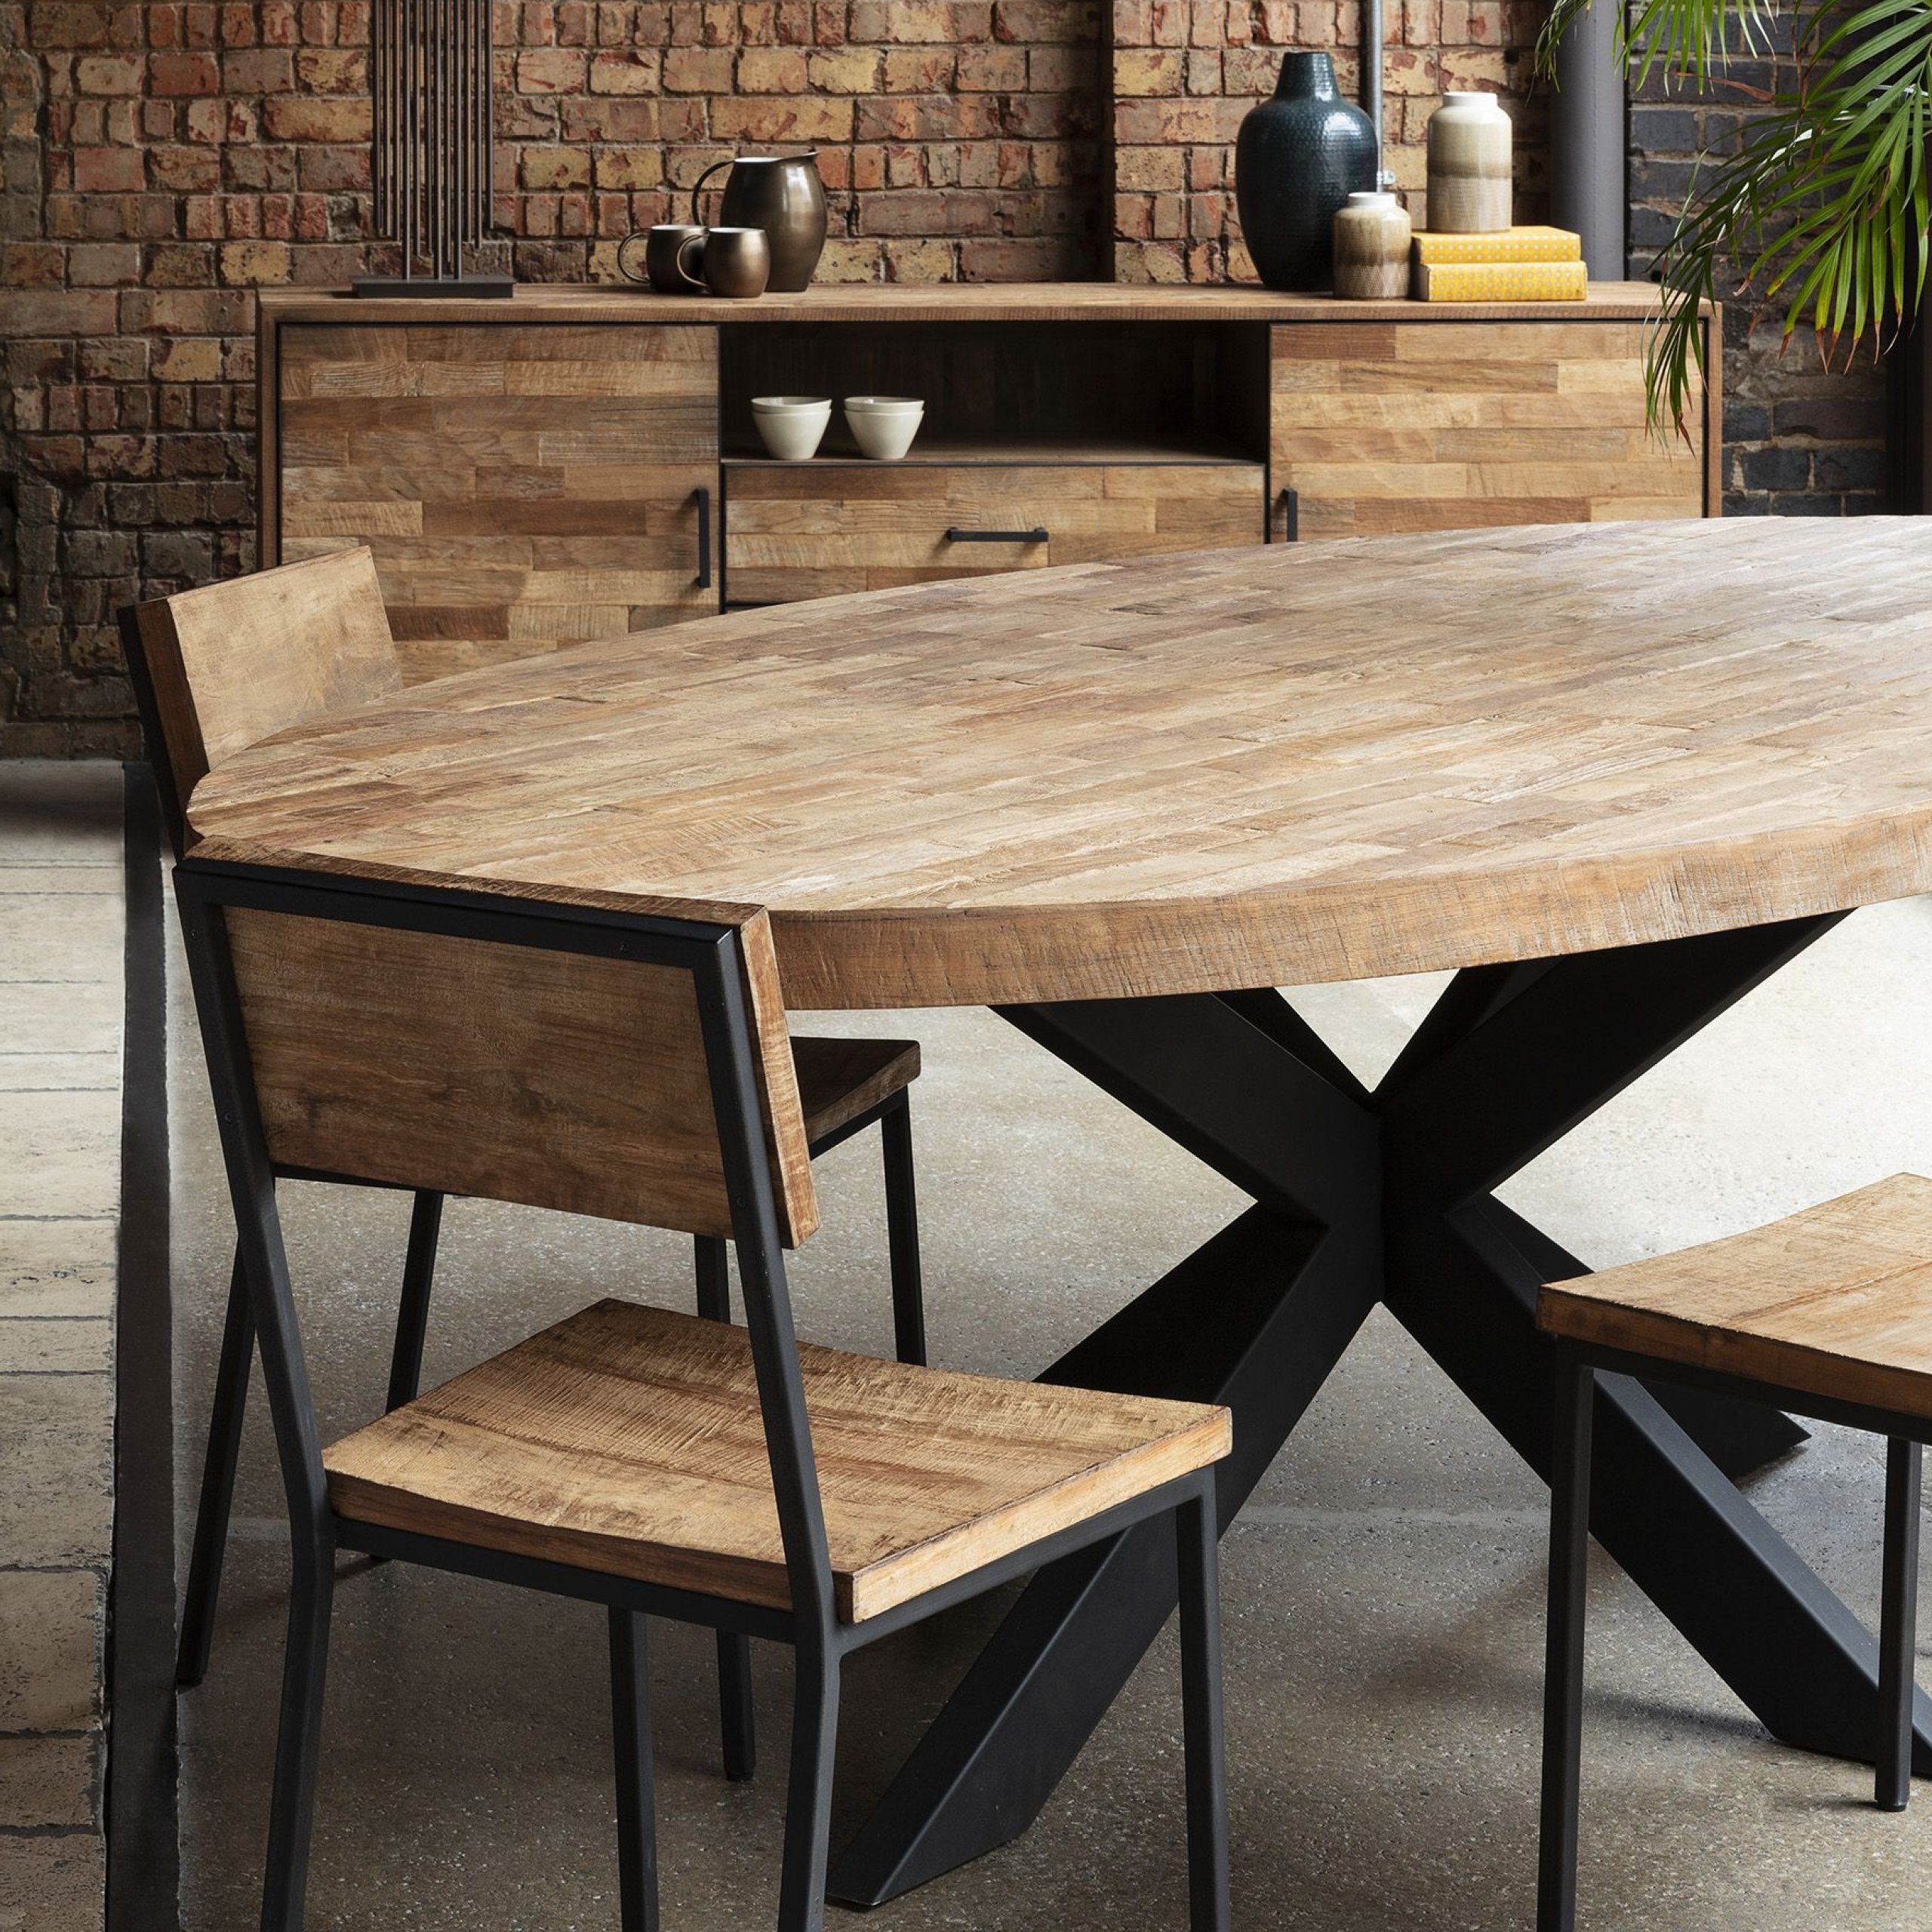 Large Round Dining Throughout Dining Tables With Black U Legs (View 12 of 25)